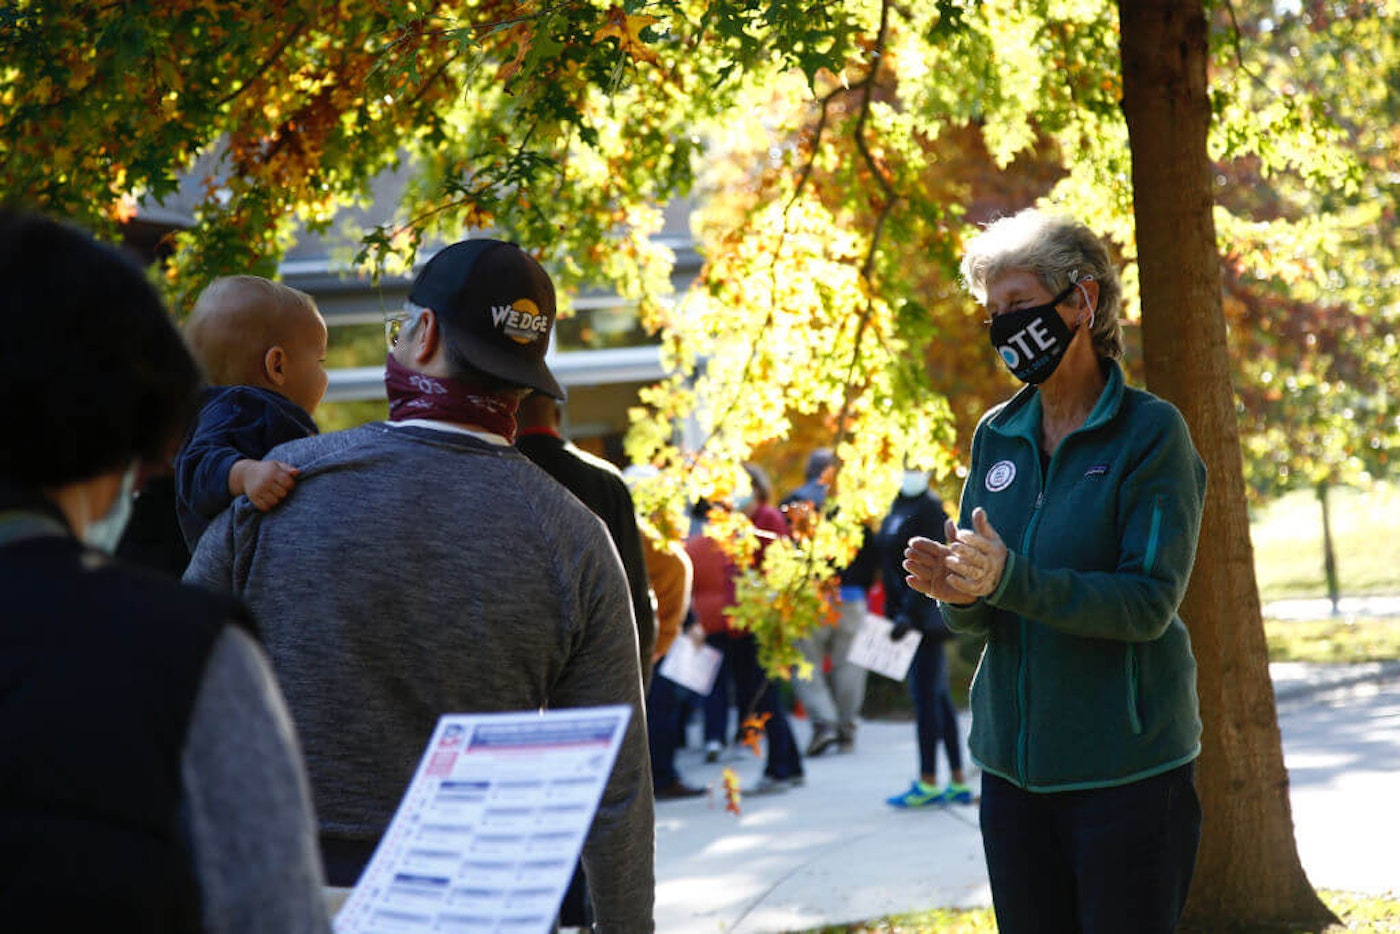 ASHEVILLE, NC - OCTOBER 15:  Susan Presson, a volunteer with the Buncombe County Democratic Party, speaks with voters waiting in line to vote at a polling place at the Dr. Wesley Grant Senior Center on October 15, 2020 in Asheville. Record numbers came out for in-person, early voting. State officials expect half of NC's registered voters will have cast ballots by day's end Wednesday. (Photo by Brian Blanco/Getty Images)